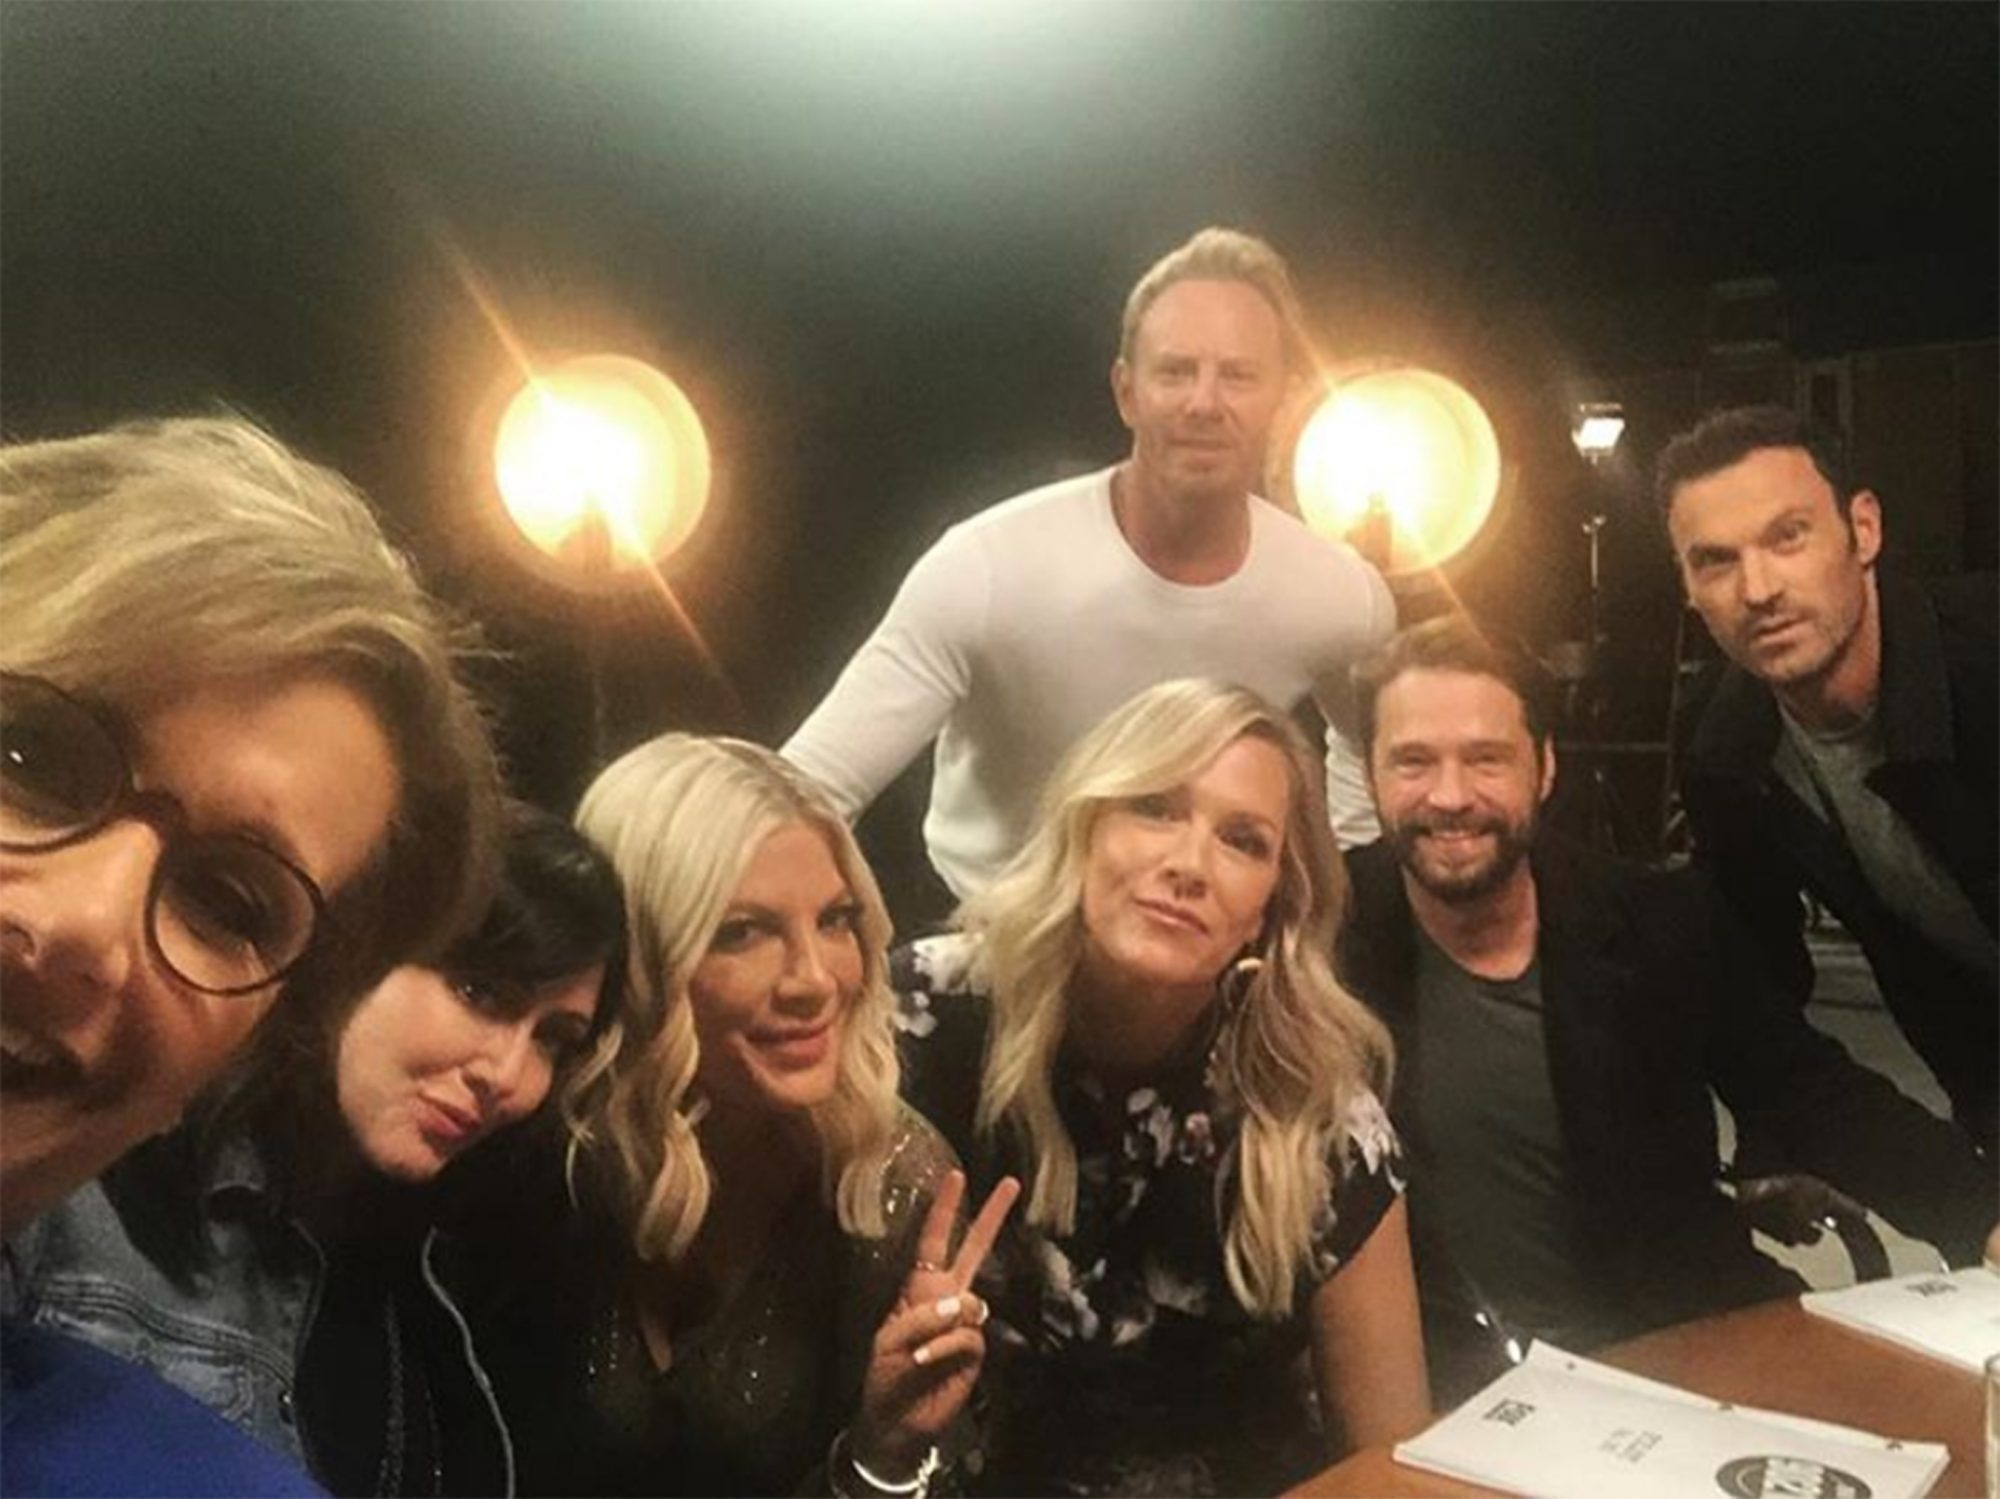 90210 Cast Reunites for Table Read